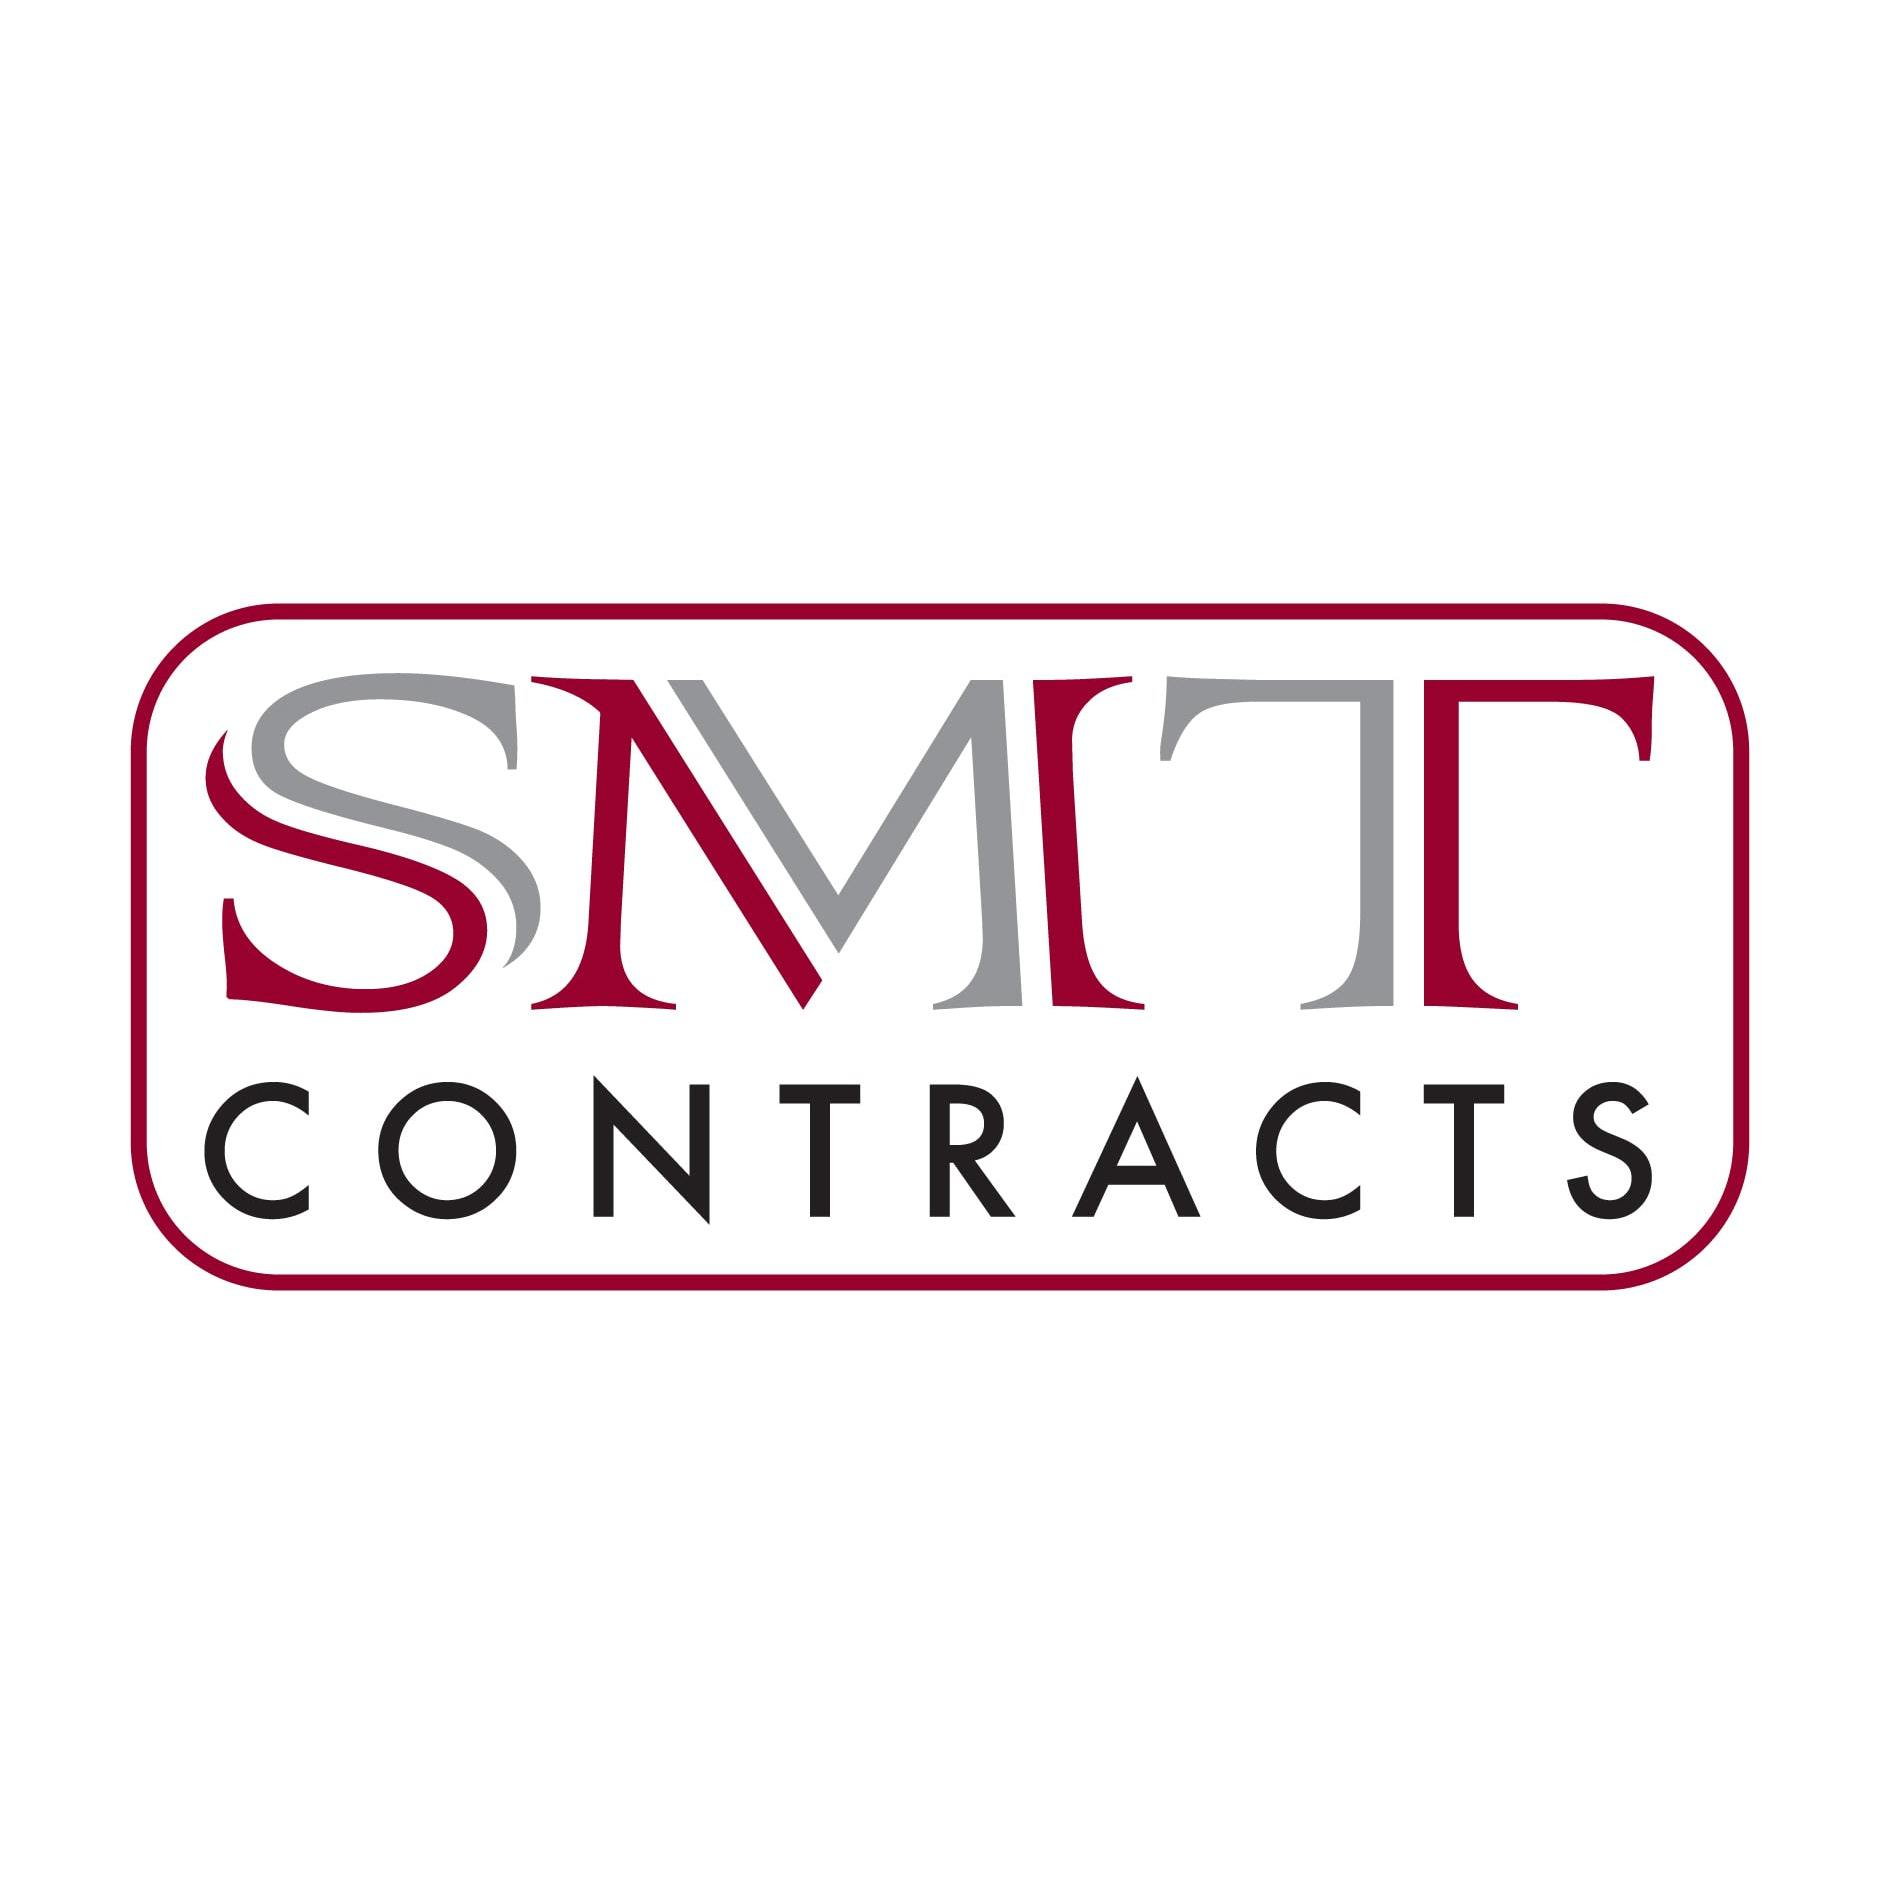 SMT Contracts Ltd - Cheltenham, Gloucestershire GL51 7PJ - 07963 861964 | ShowMeLocal.com